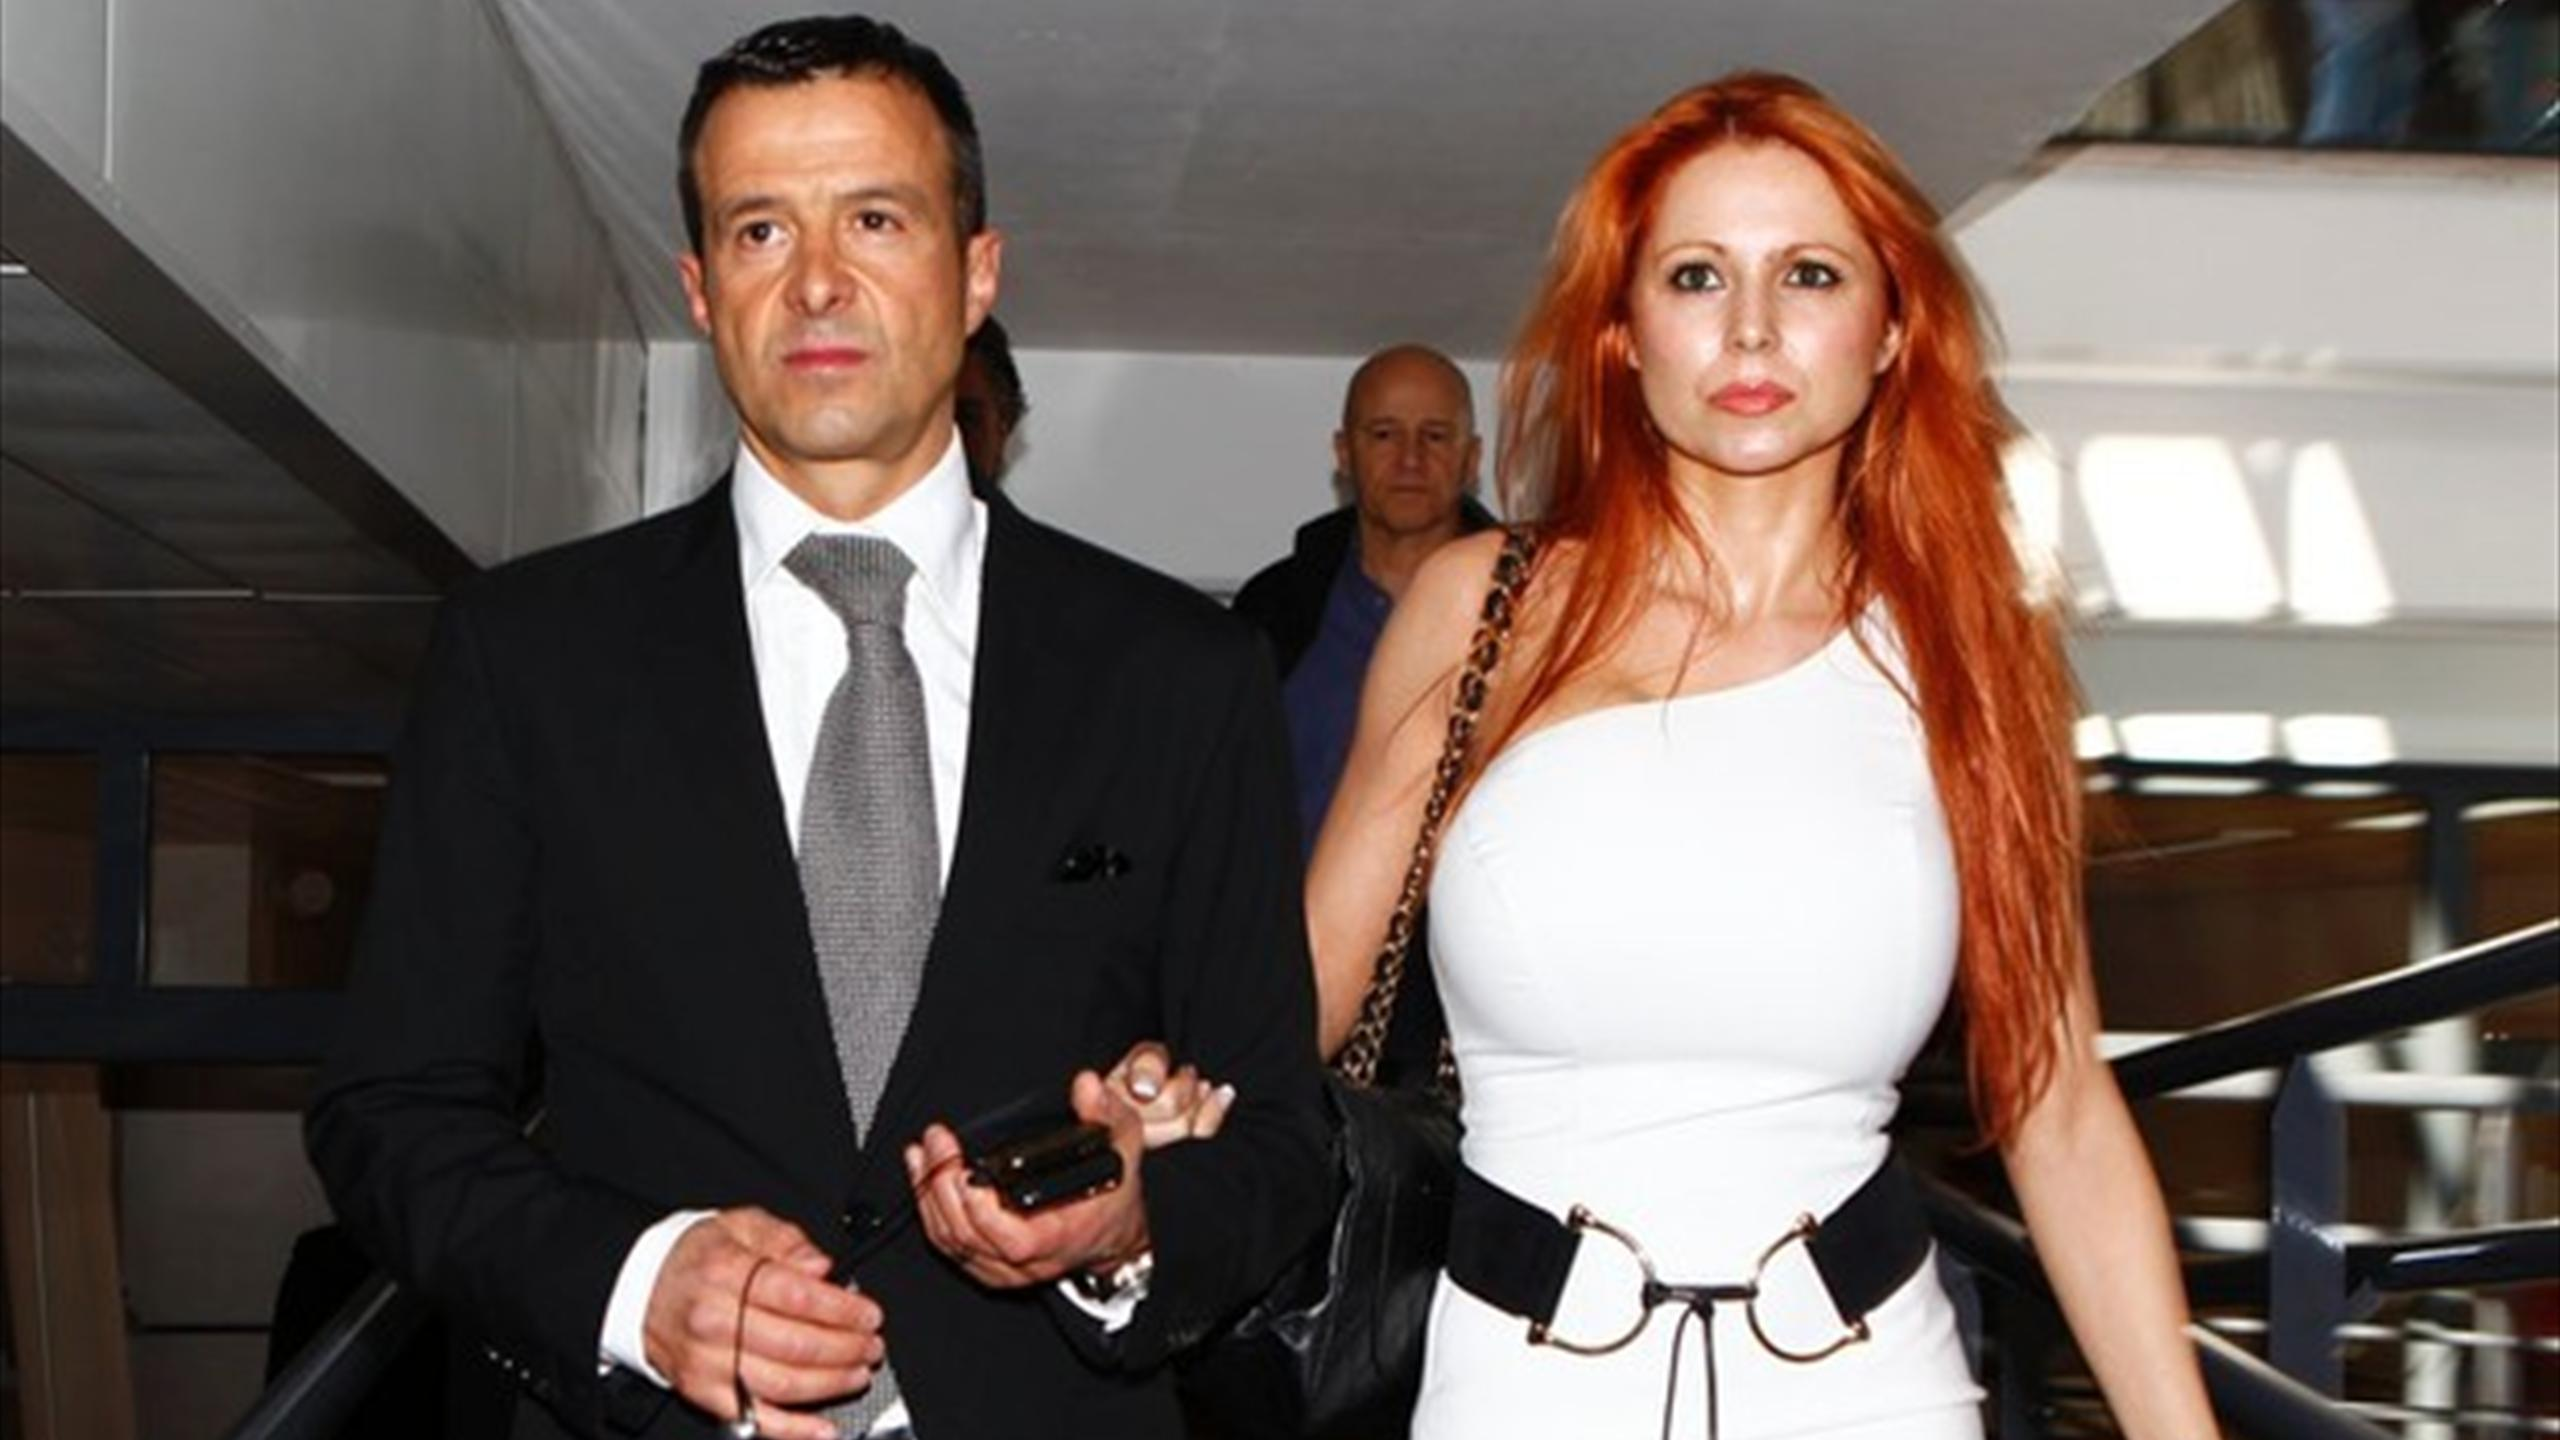 Jorge mendes net worth house car salary wife family - Marisa pascual ...